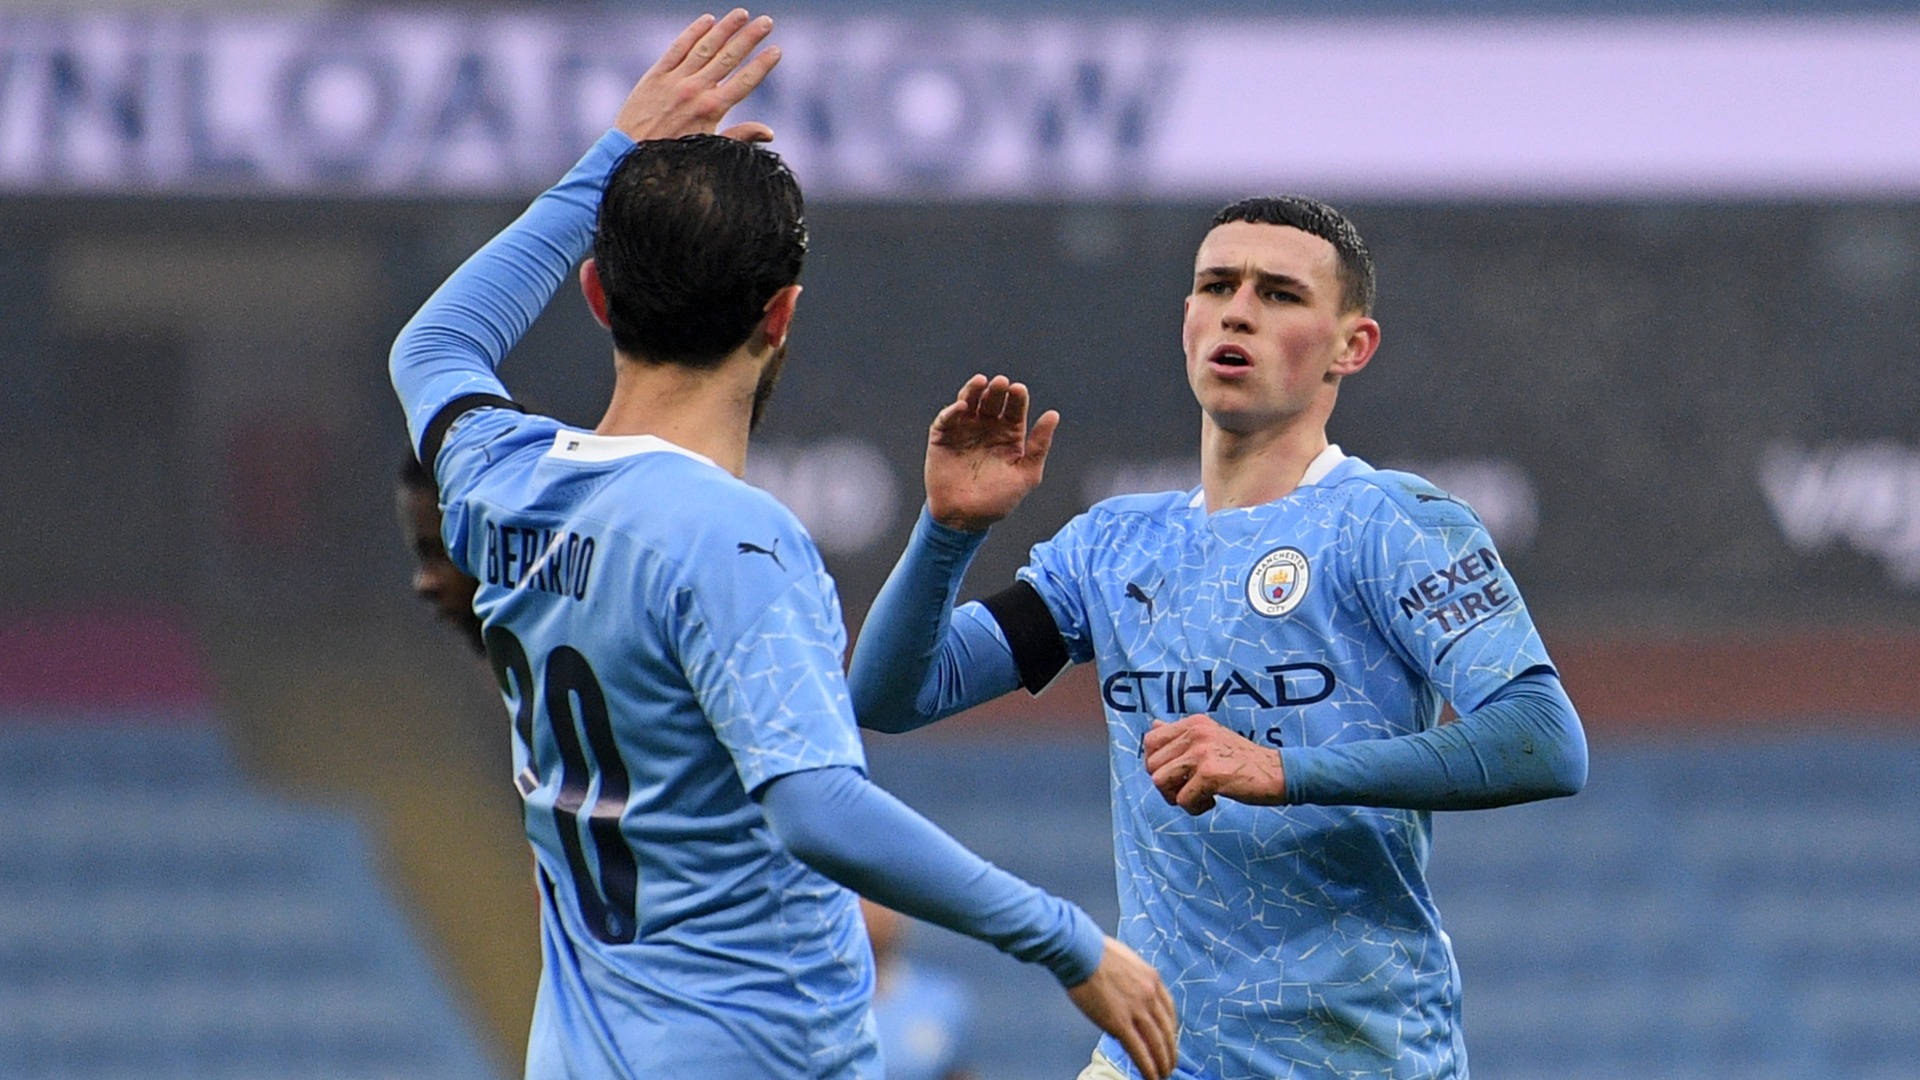 Manchester City 3-0 Birmingham City: Silva at the double as Guardiola's men cruise into fourth round